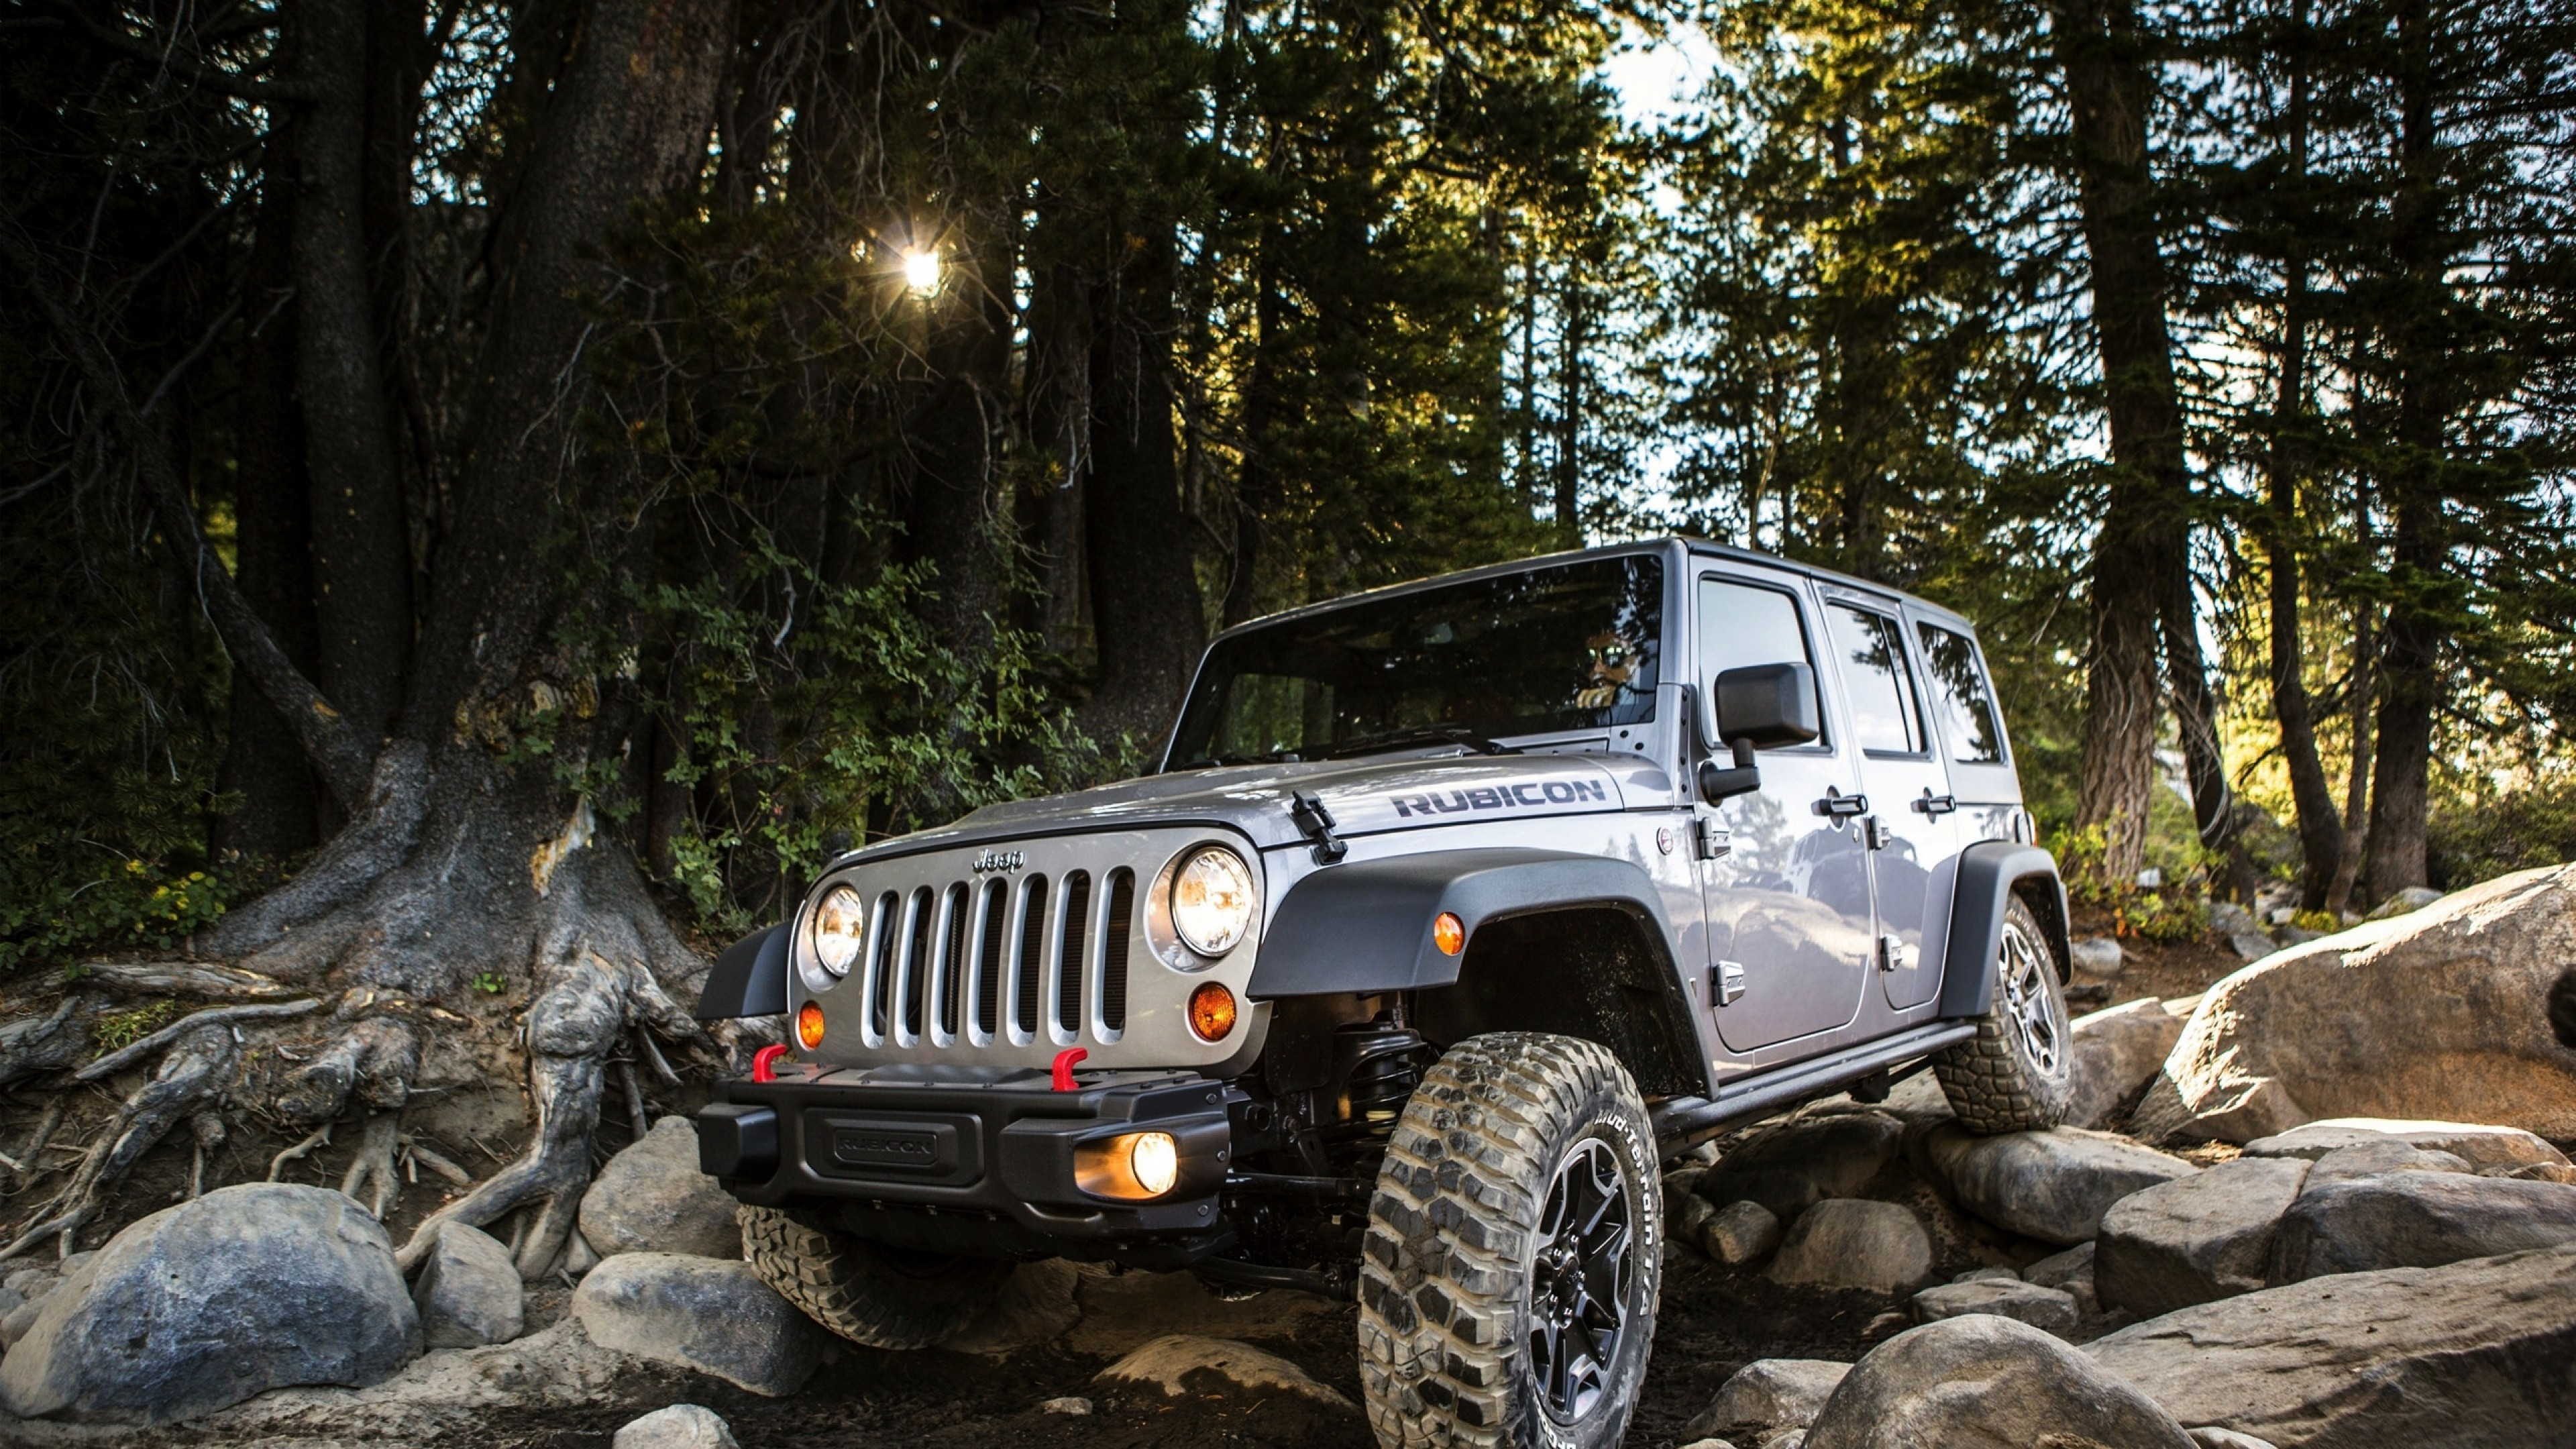 Res: 3840x2160, Jeep Wallpapers High Quality